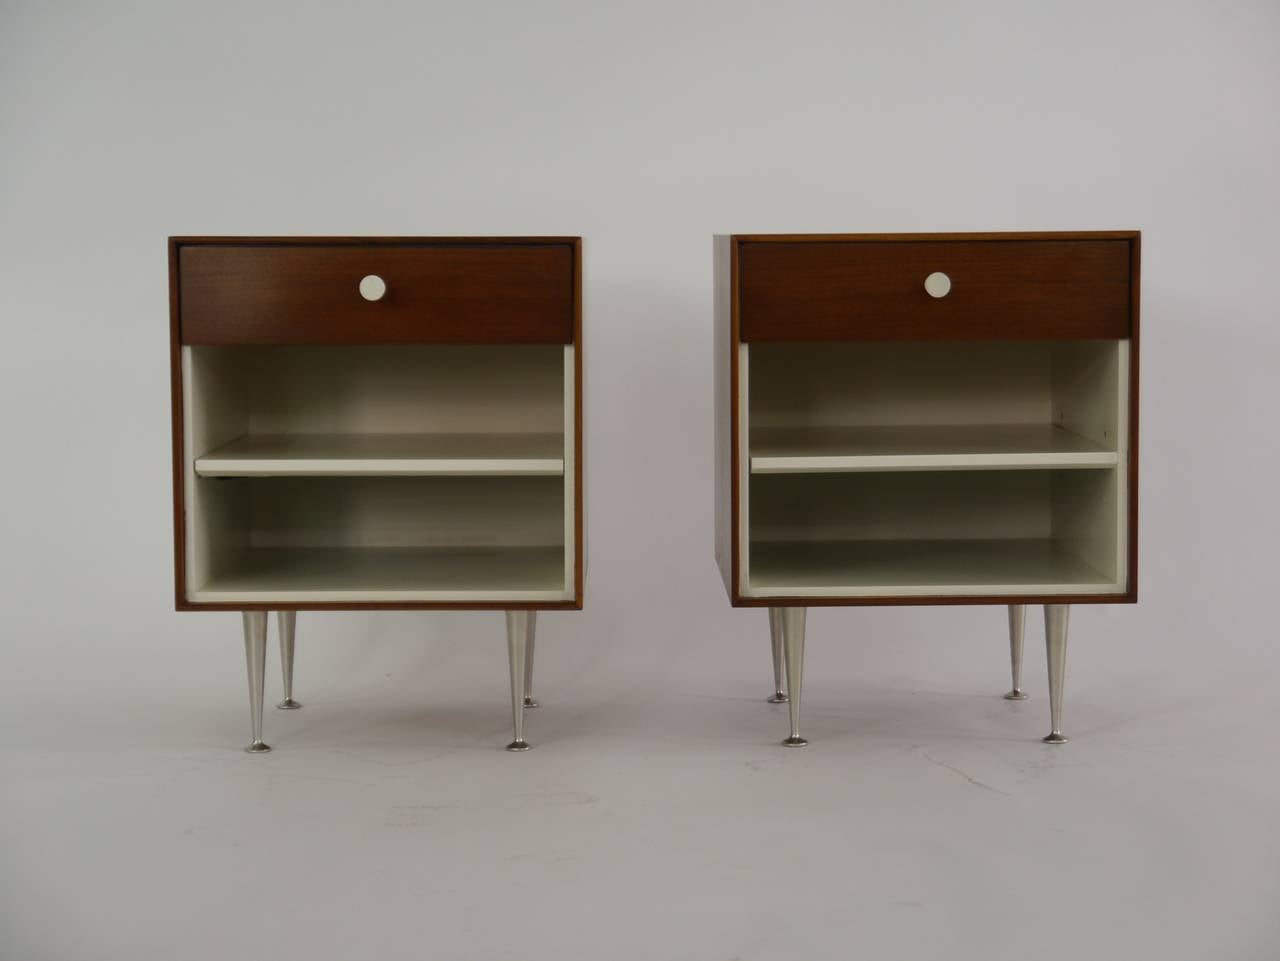 Thin Edge nightstands by George Nelson for Herman Miller. Walnut cases, lacquered interior, having one shelf, porcelain pulls and aluminum legs.